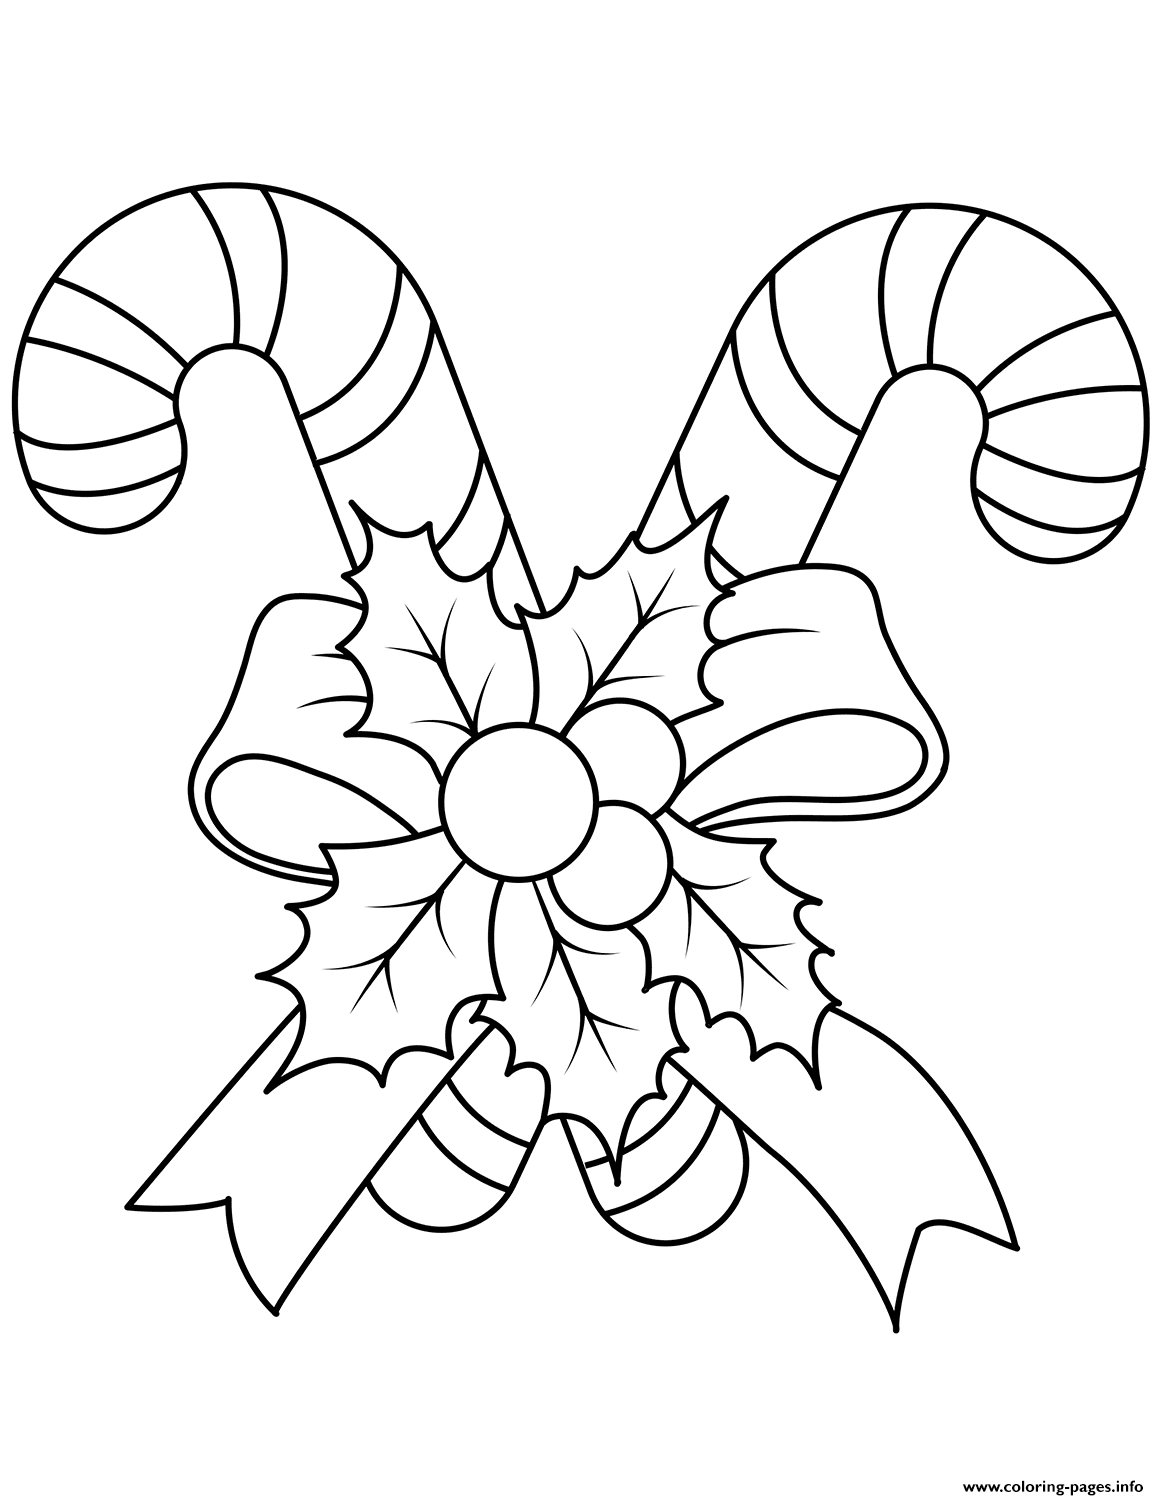 coloring candy cane free printable candy cane coloring pages for kids coloring candy cane